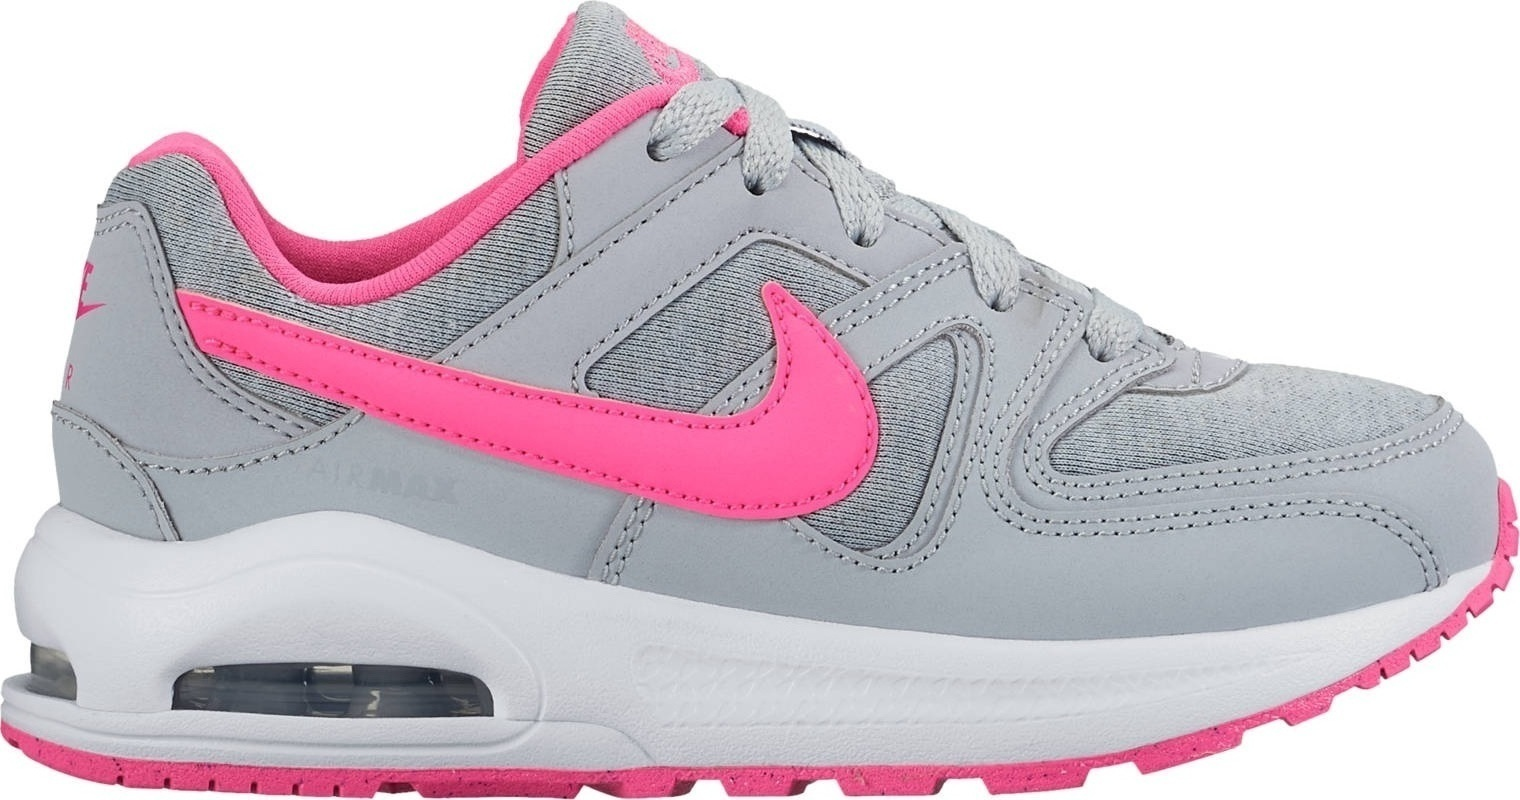 new arrival 8ba25 5e0a4 norway nike air max command skroutz opinie 61643 9334a